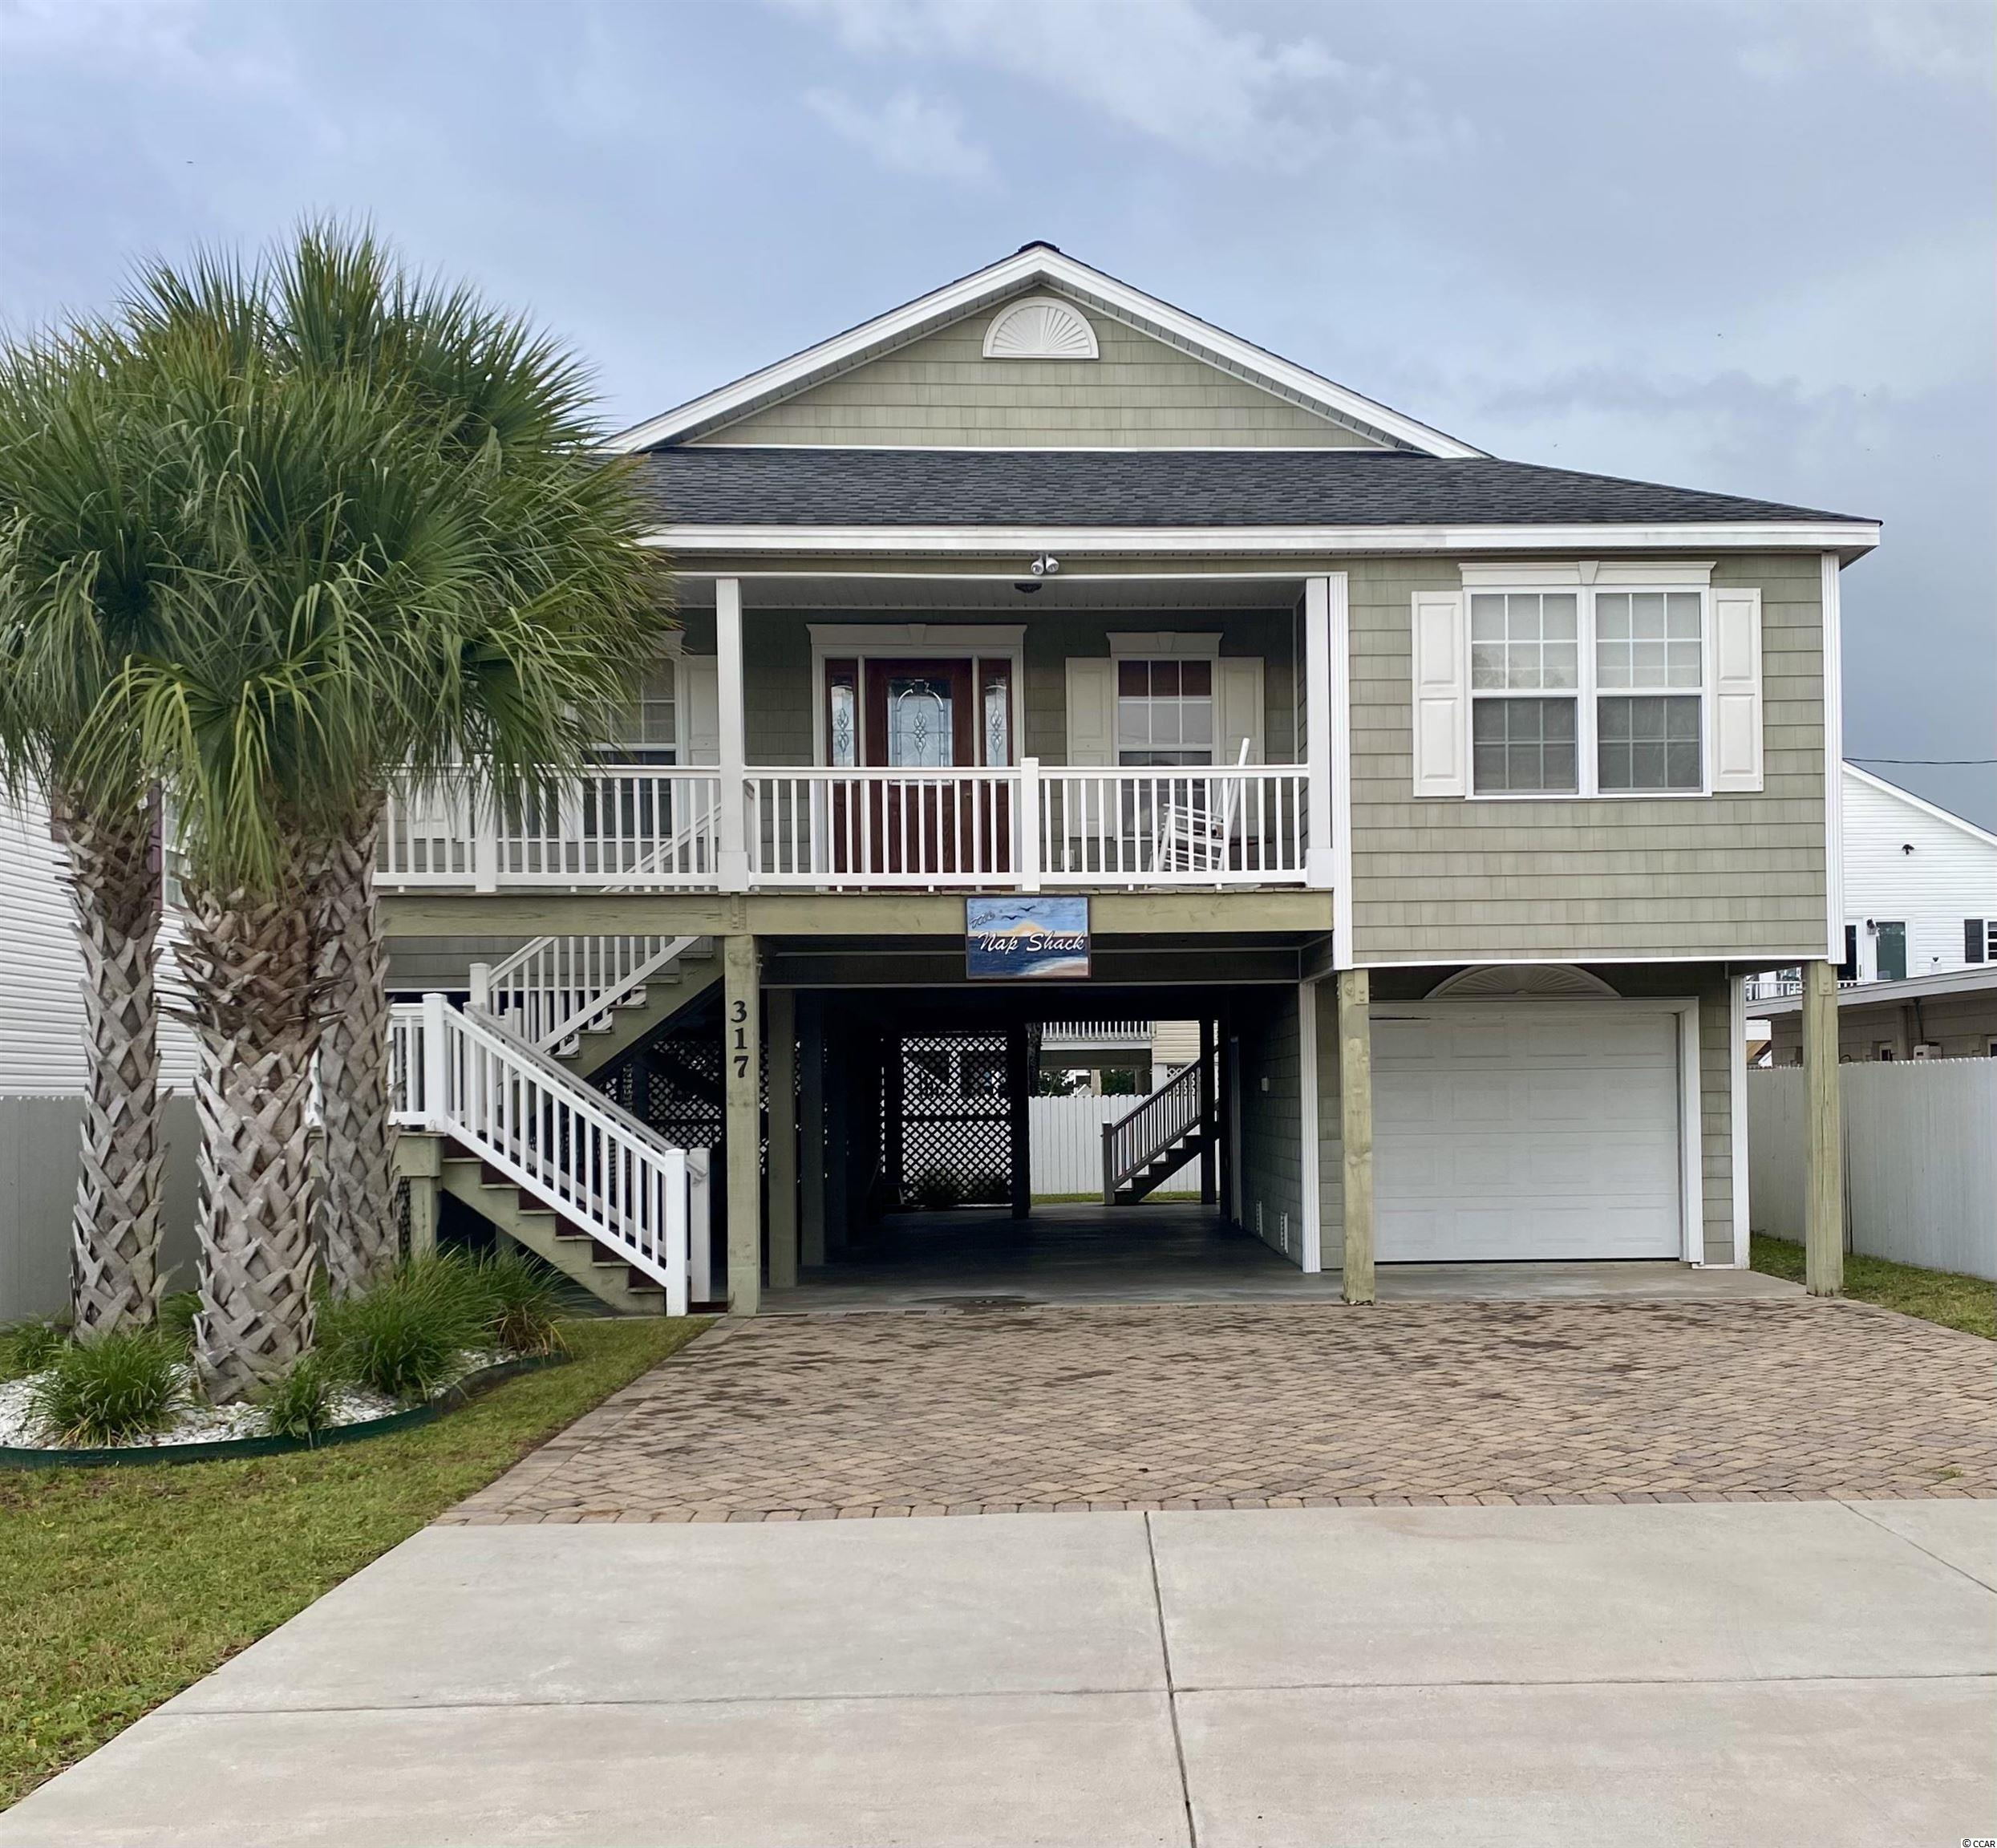 Gorgeous, raised beach home in the Prime Cherry Grove section of North Myrtle Beach. This amazingly maintained 4br /3 bth home has Cove ceiling in the den that offers a spacious open feel to the home. With hardwood floors throughout the Den/ kitchen area. Kitchen has been upgraded with custom cabinets and Quartz countertops, all stainless-steel appliances with beautiful apron sink. The back covered porch is located off the kitchen area and is perfect for just sitting and relaxing. Enjoy the downstairs outdoor living area that is perfect for beach living at its best, plenty of room for grilling and enjoying the beach breeze, including outdoor shower to enjoy after a long day on the beach. Garage offers ample storage for beach items, Golf Cart parking and more. Classic coastal landscaping with nice back yard area. Home comes fully furnished and ready to enjoy.  The home's location is perfect, with a very short walk to the ocean and walking distance to grocery store, popular restaurants and the Cherry Grove Pier. The home has been a second home and seller is the original owner. It's turn key ready for you to enjoy as your primary home, 2nd Beach home or prime rental property.